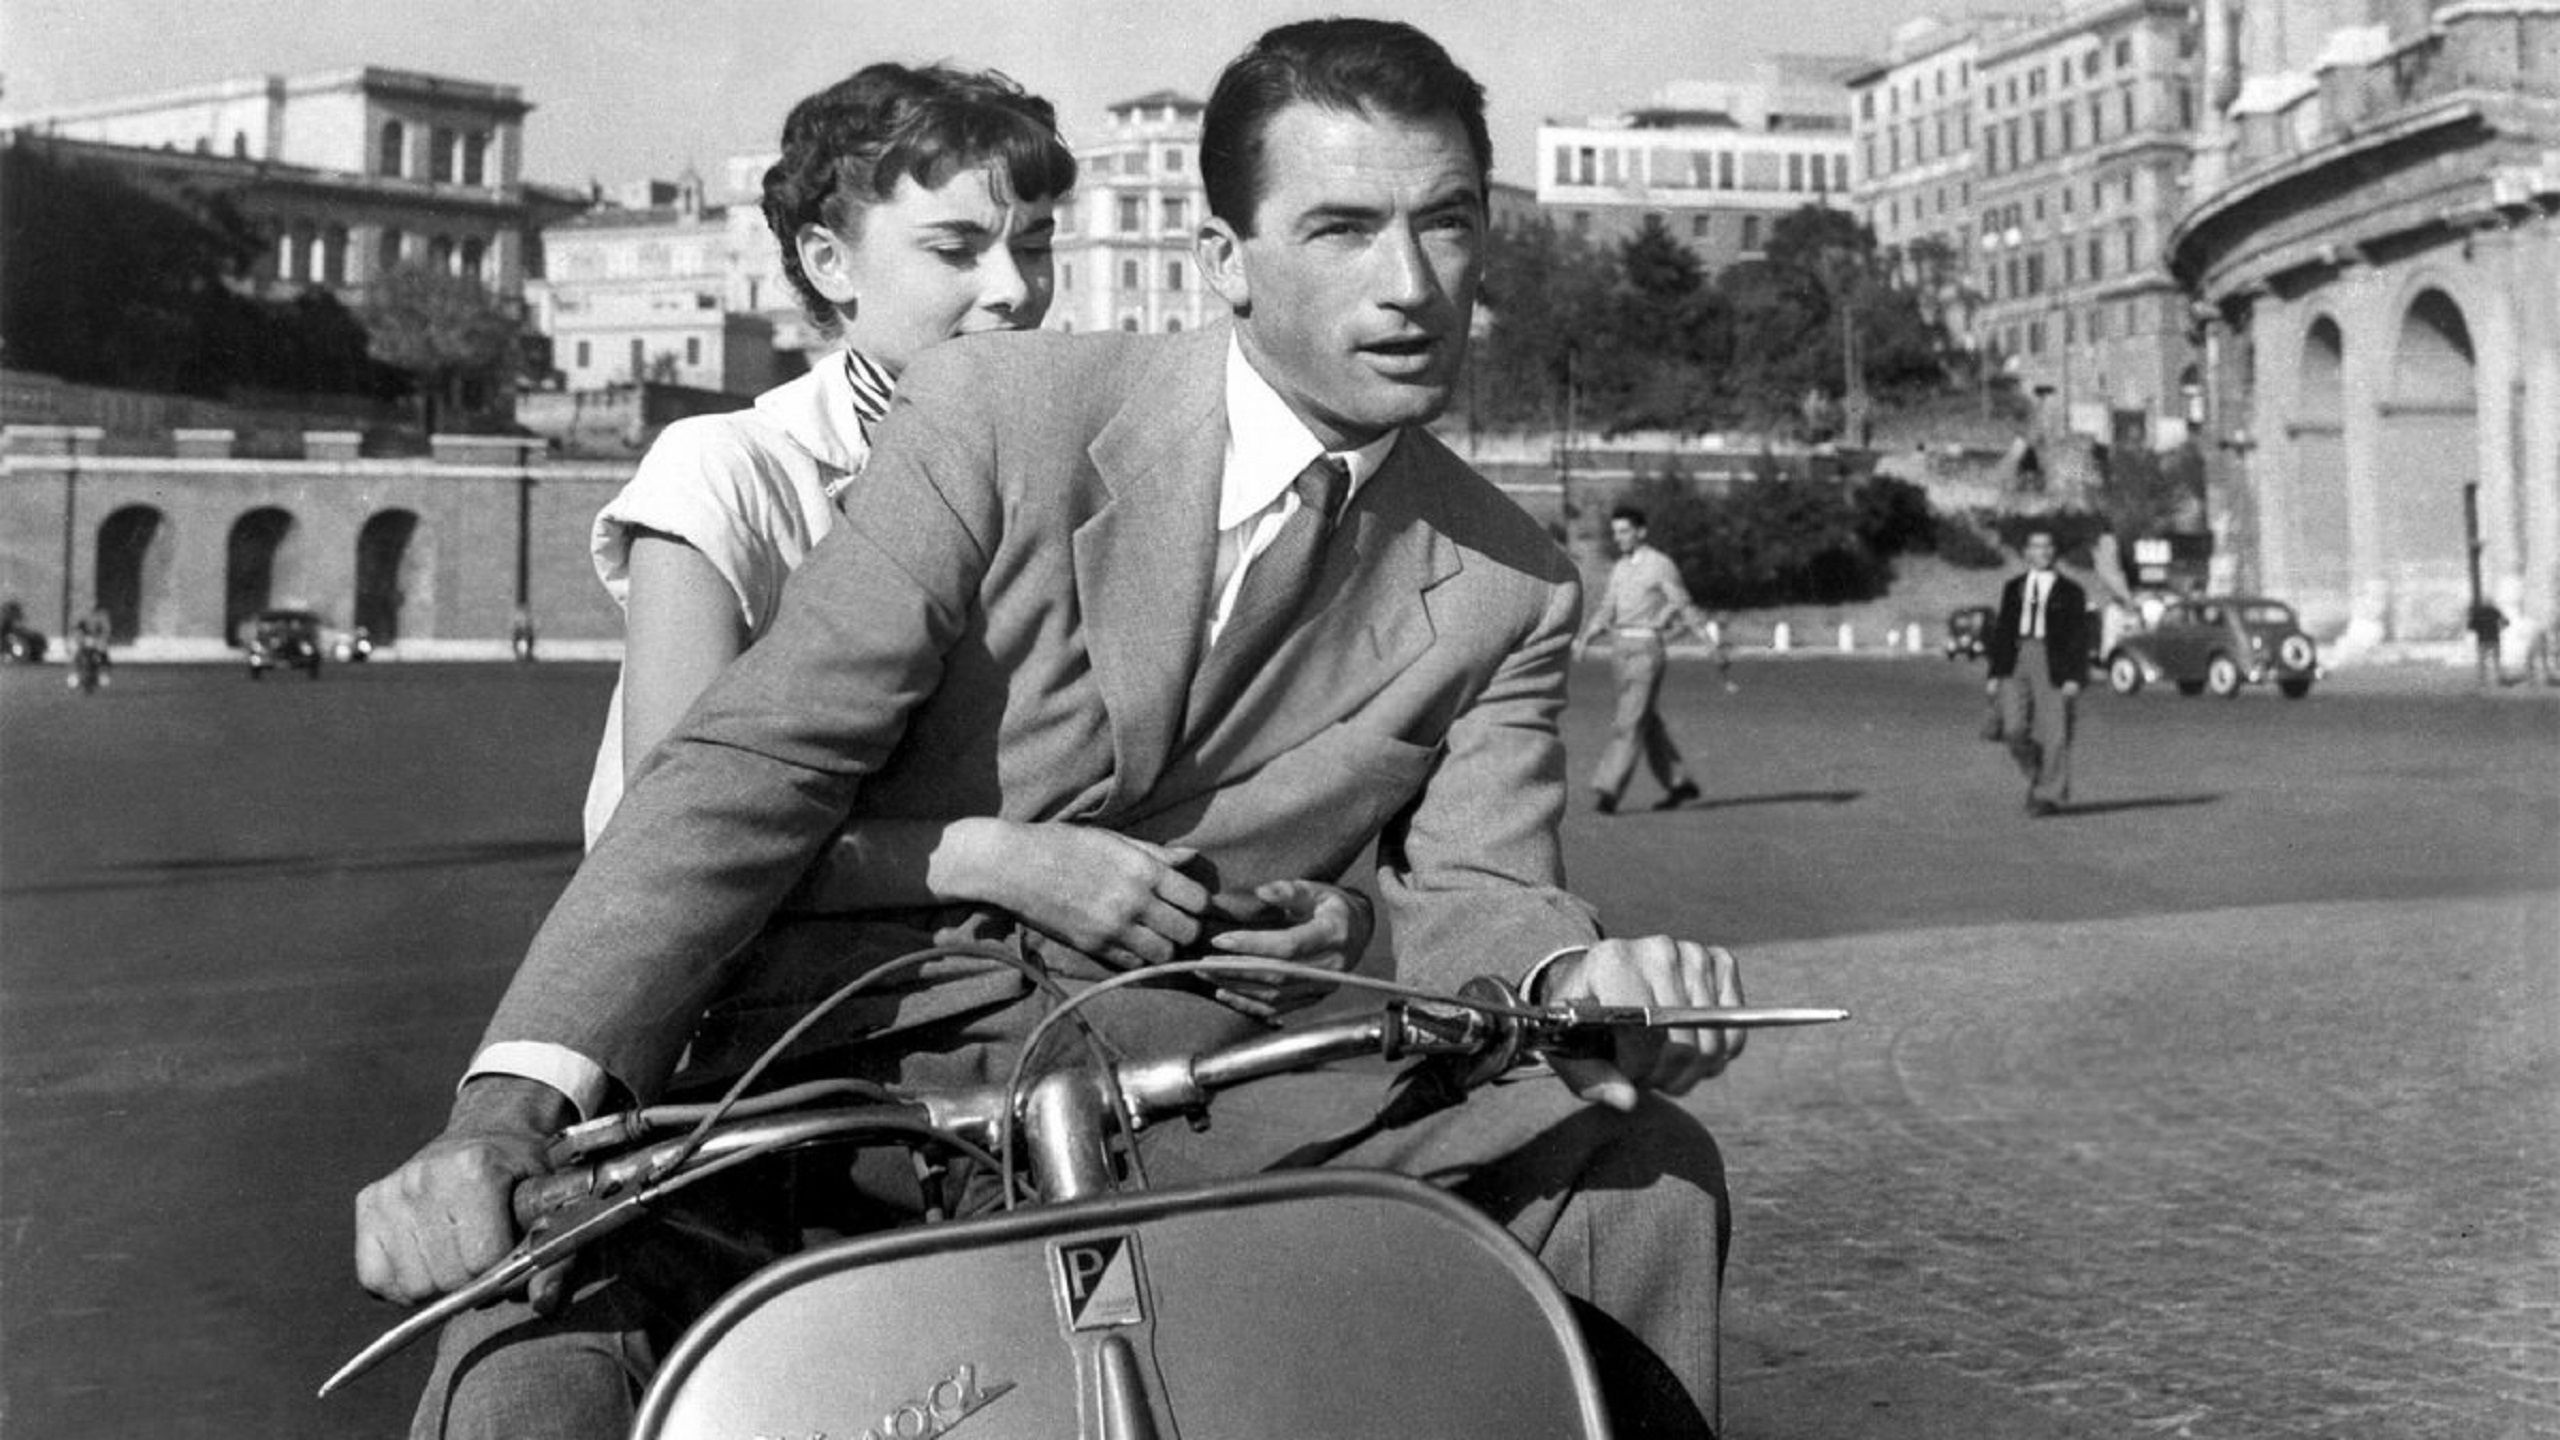 Vacanze Romane - Roman Holiday (1953) Gregory Peck and Audrey Hepburn on Vespa